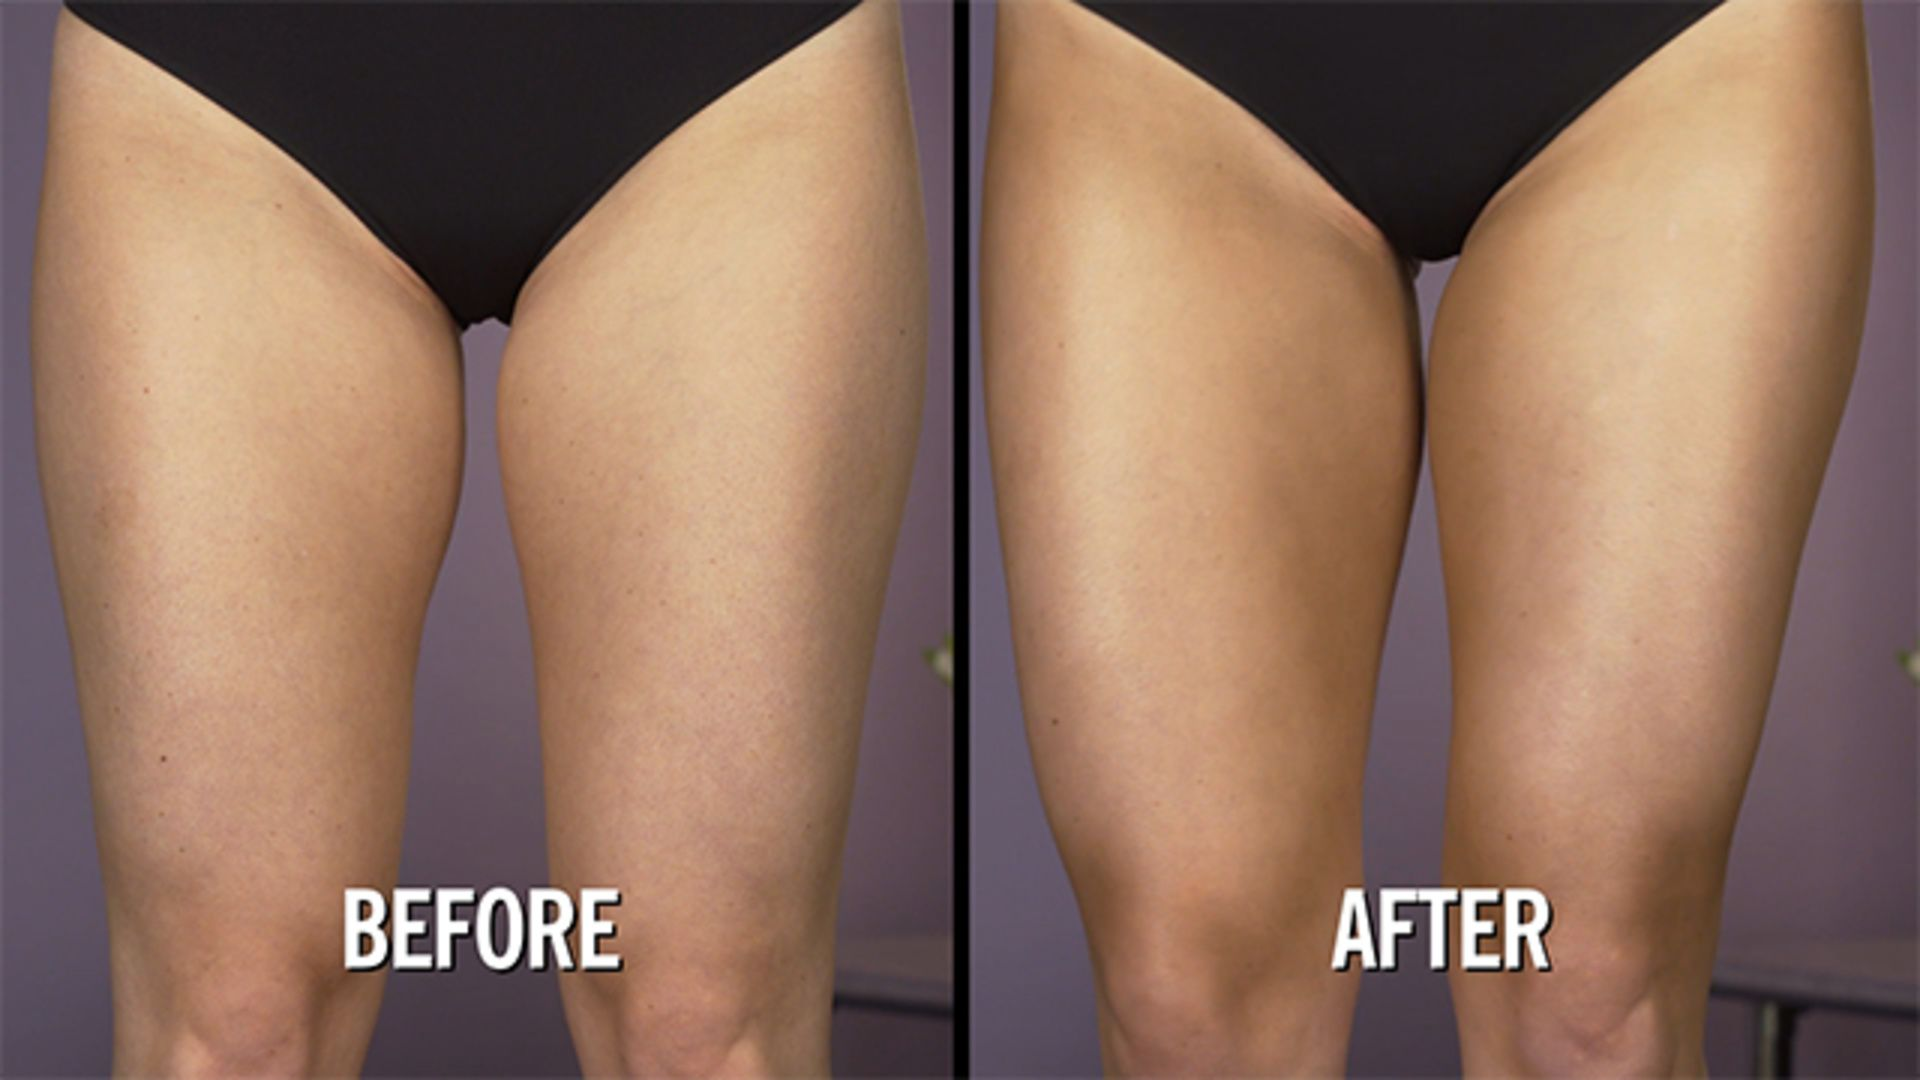 Can You Get Acne On Your Legs How To Contour Your Legs Want Sexy Toned Legs This Summer This Contouring Trick Can Give You The Look You Want Acne Cure Overnight Acne Scar Cure Acne Cure